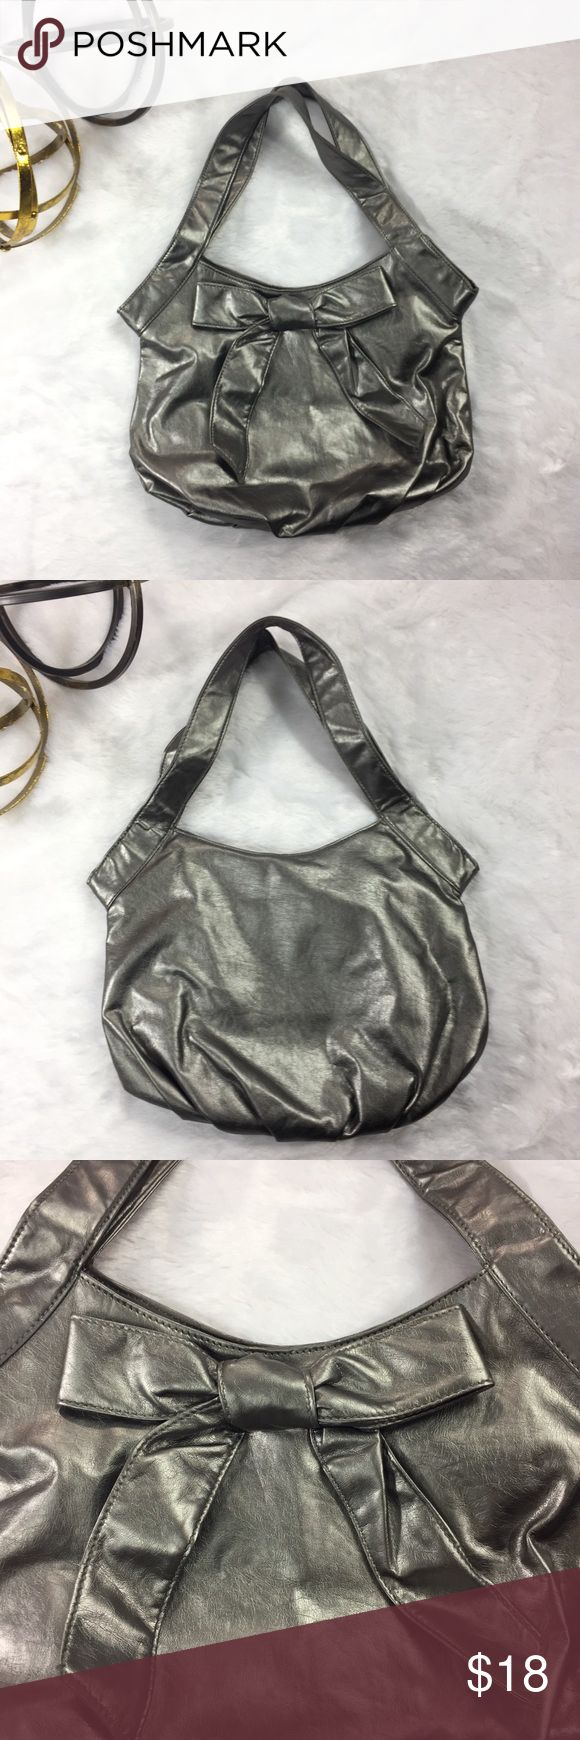 """Metallic Silver Shoulder Bag Metallic Silver Shoulder Bag. Bow in front. Metallic snap closure. Man-made material. No brand name available. Approximate measurements (measured flat): width: 14"""", length: 11.5"""", drop: 20"""". Excellent used condition. No signs of wear. Bags Shoulder Bags"""